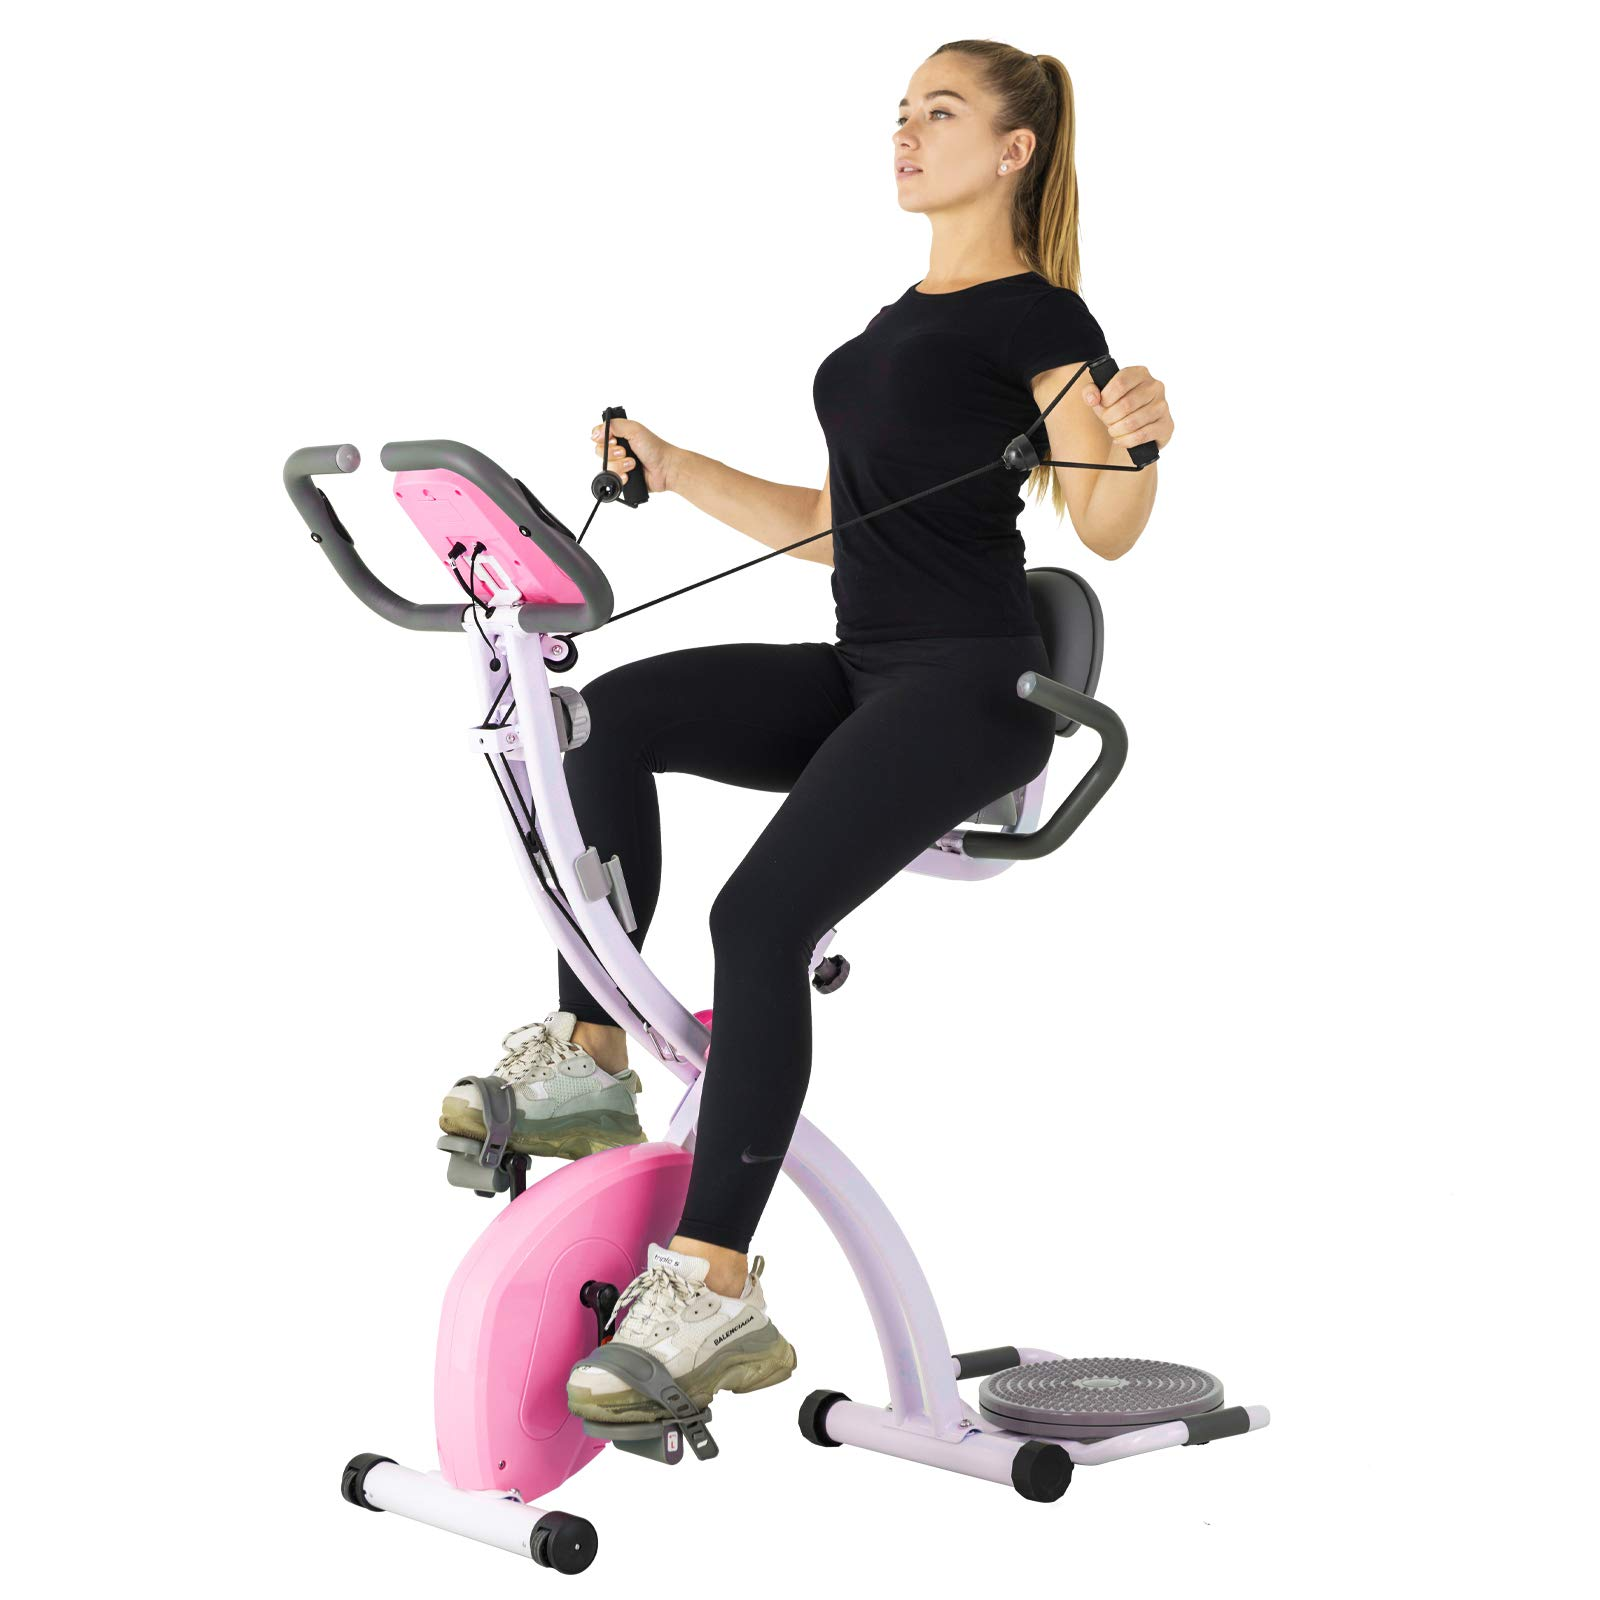 Murtisol Folding Stationary Bike Foldable Exercise Bike Indoor Cycling W/Twister Plate, Arm Resistance Bands, Extra Large&Adjustable Seat and Heart Monitor for Home Cardio Workout, Pink by Murtisol